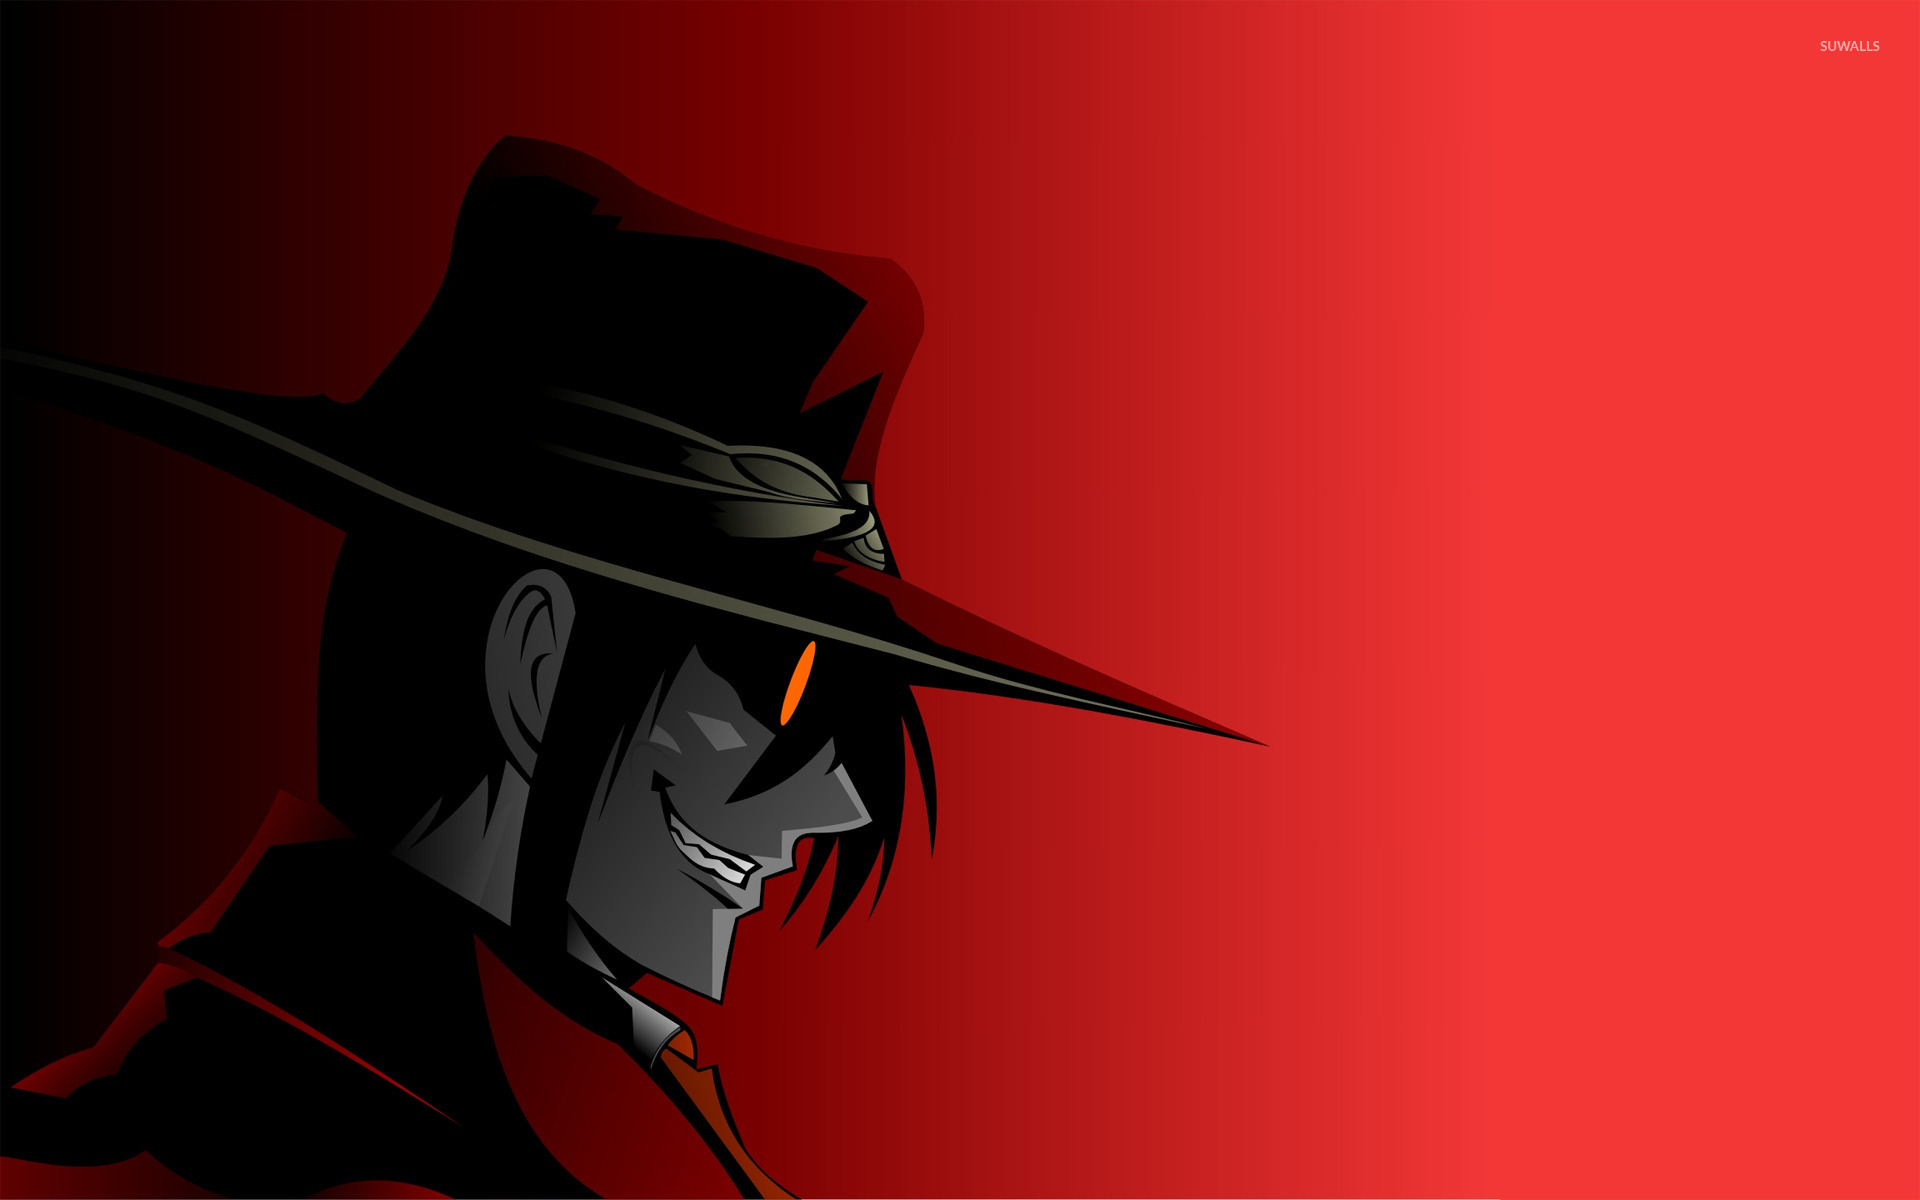 Typography Quotes Wallpaper Alucard Hellsing 3 Wallpaper Anime Wallpapers 15923